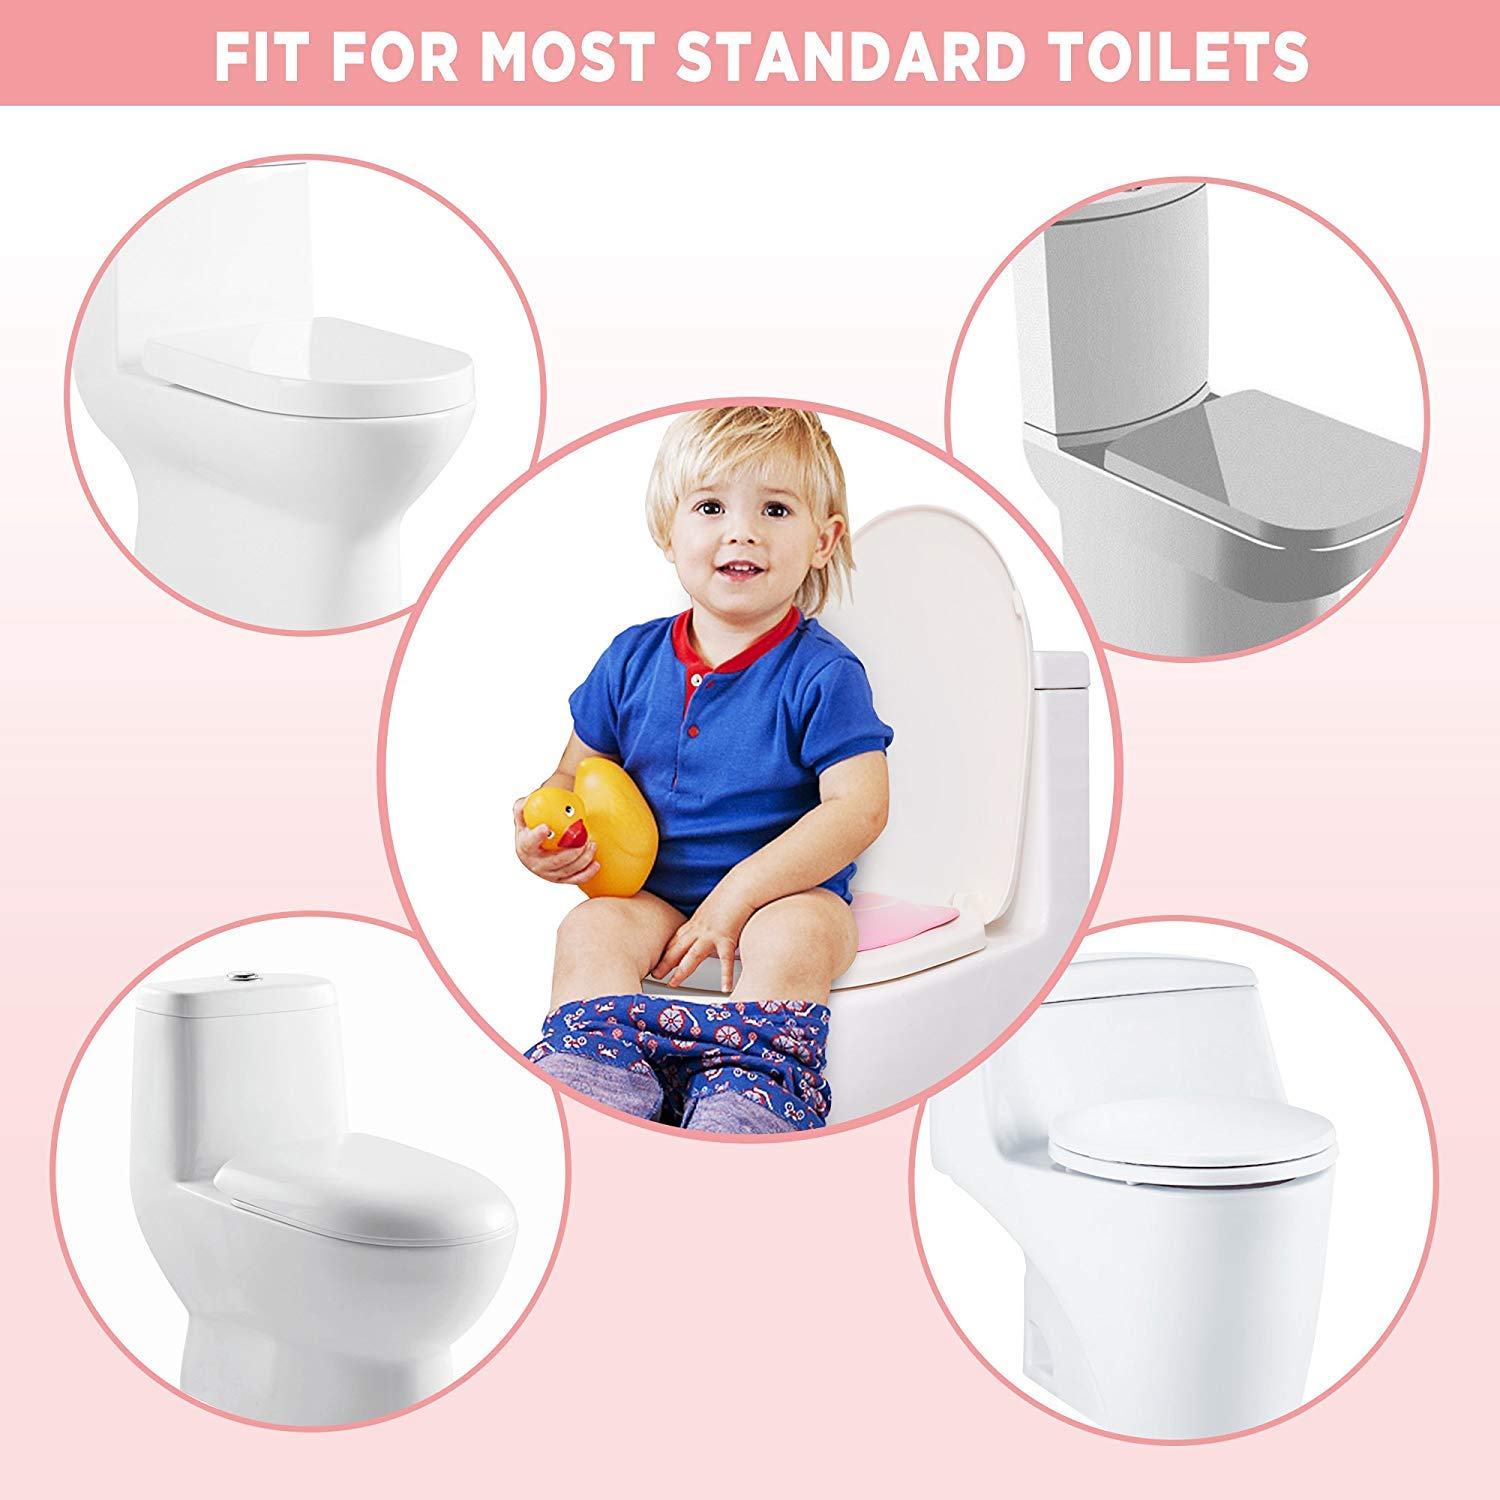 Upgraded Folding Travel Toilet Potty Pad Blue Toddlers and Kids Vamotto Portable Potty Training Seat Covers with Non Slip Pads and Carry Bag for Babies